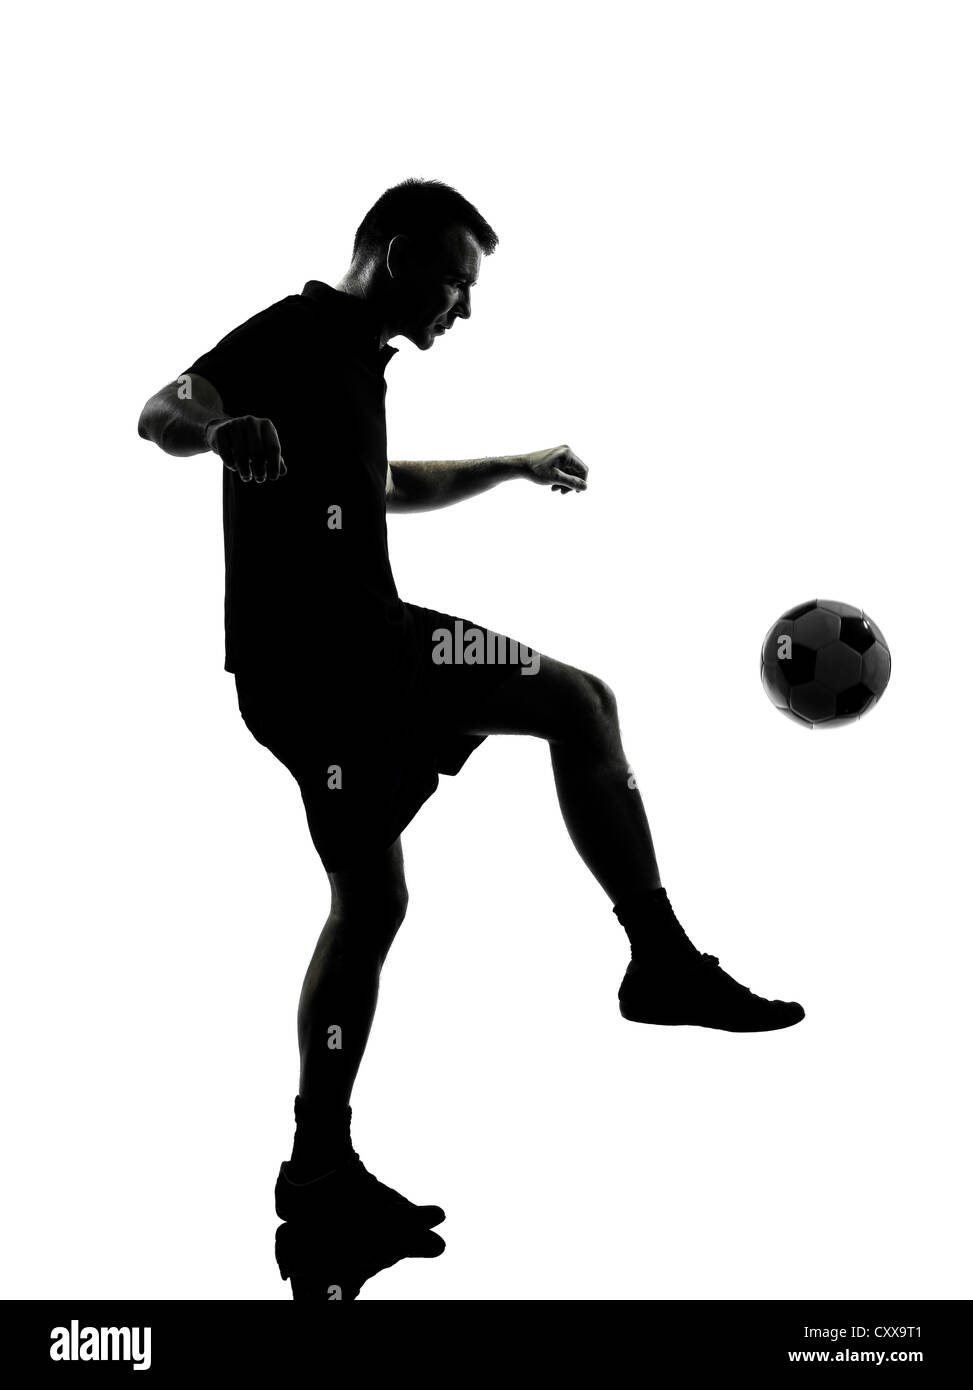 one man soccer player in studio silhouette isolated on white background - Stock Image